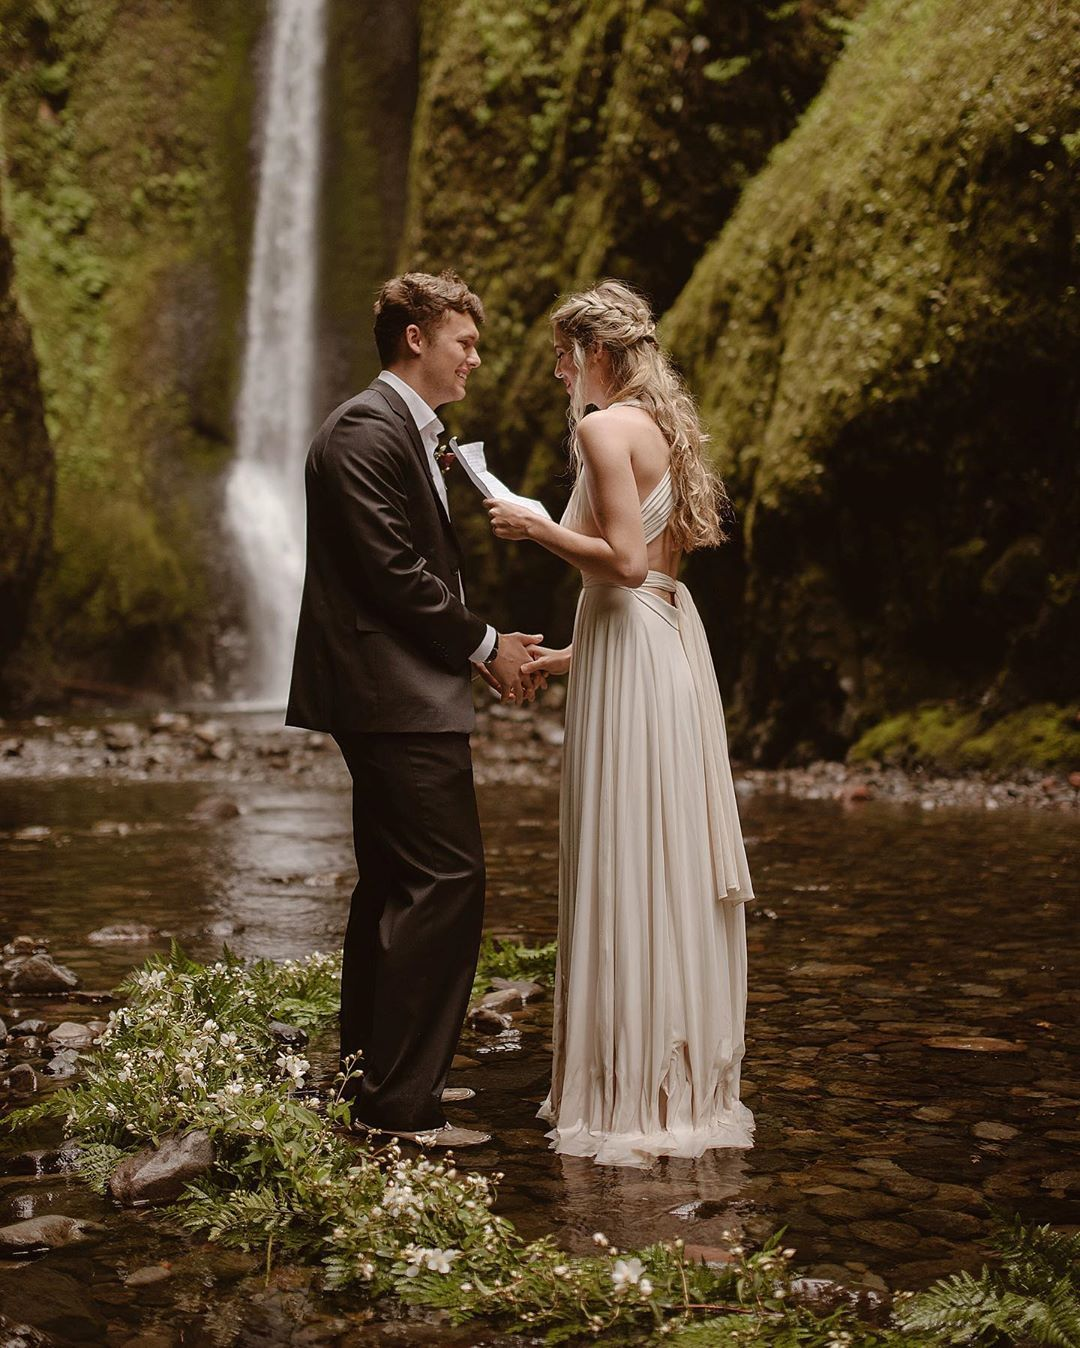 Elopement Photographers On Instagram You Don T Have To Get Married In Colorado To Have A Just Us Weddi In 2020 Elopement Photographer Getting Married Kauai Wedding